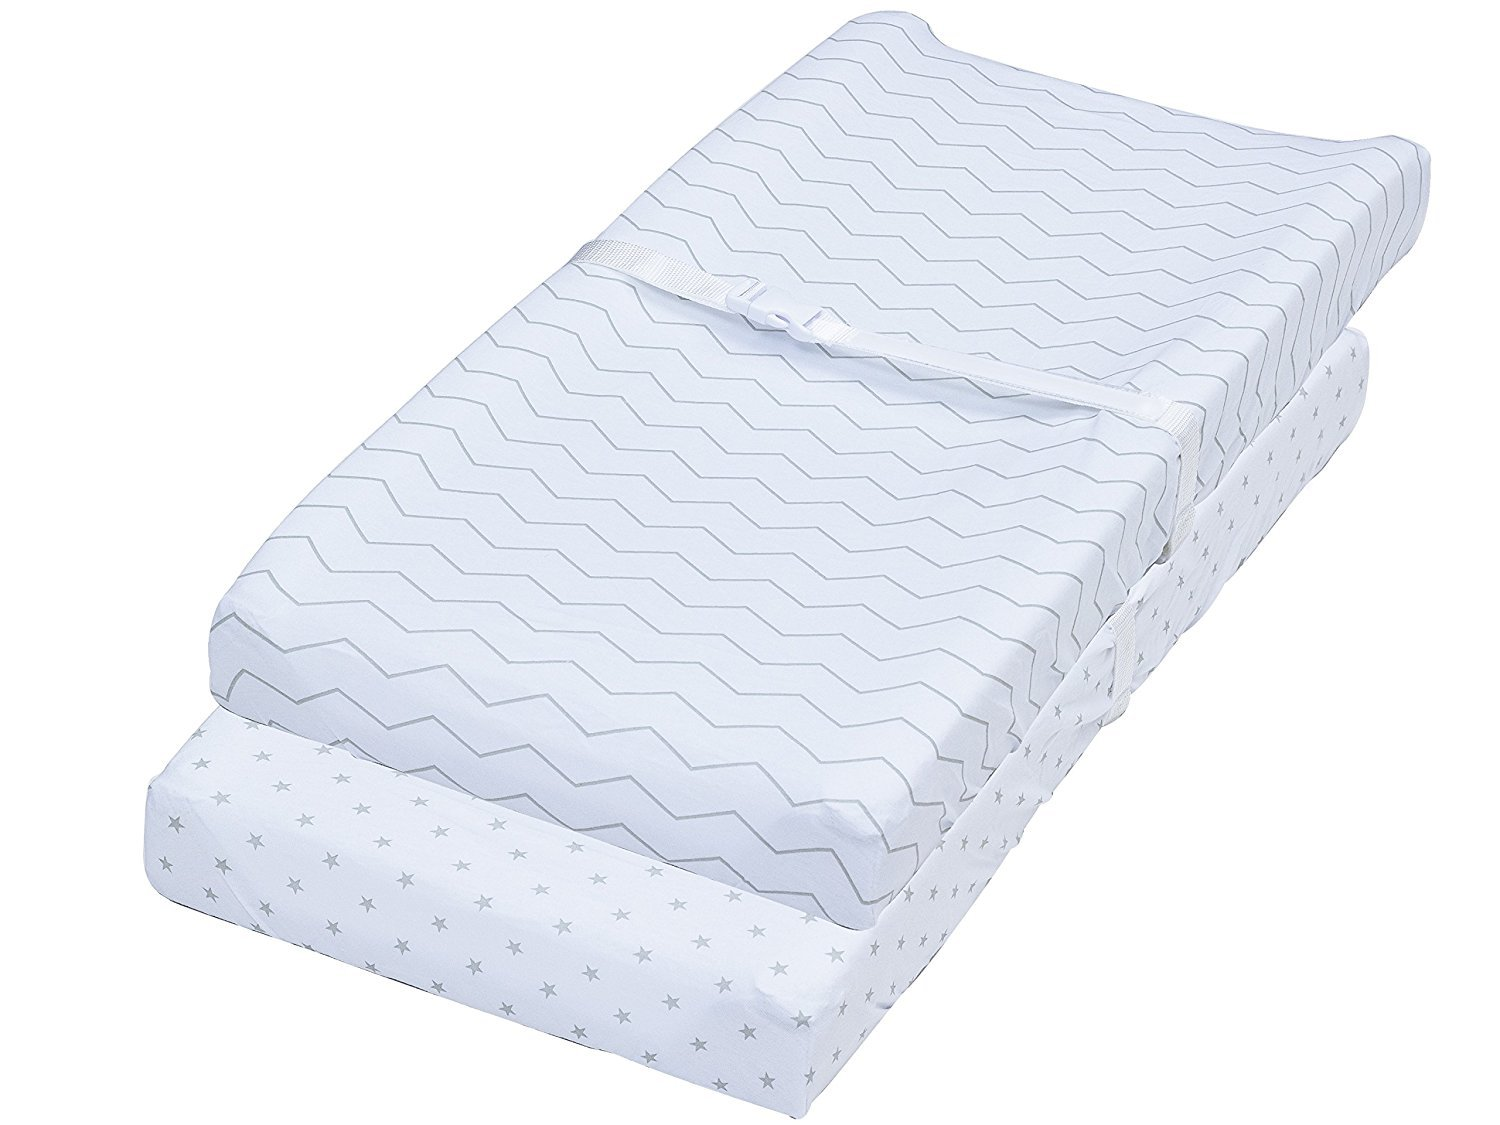 Leakproof Changing Pad Covers, 2 Pack Chevron & Stars Fitted Soft Cotton Sheets